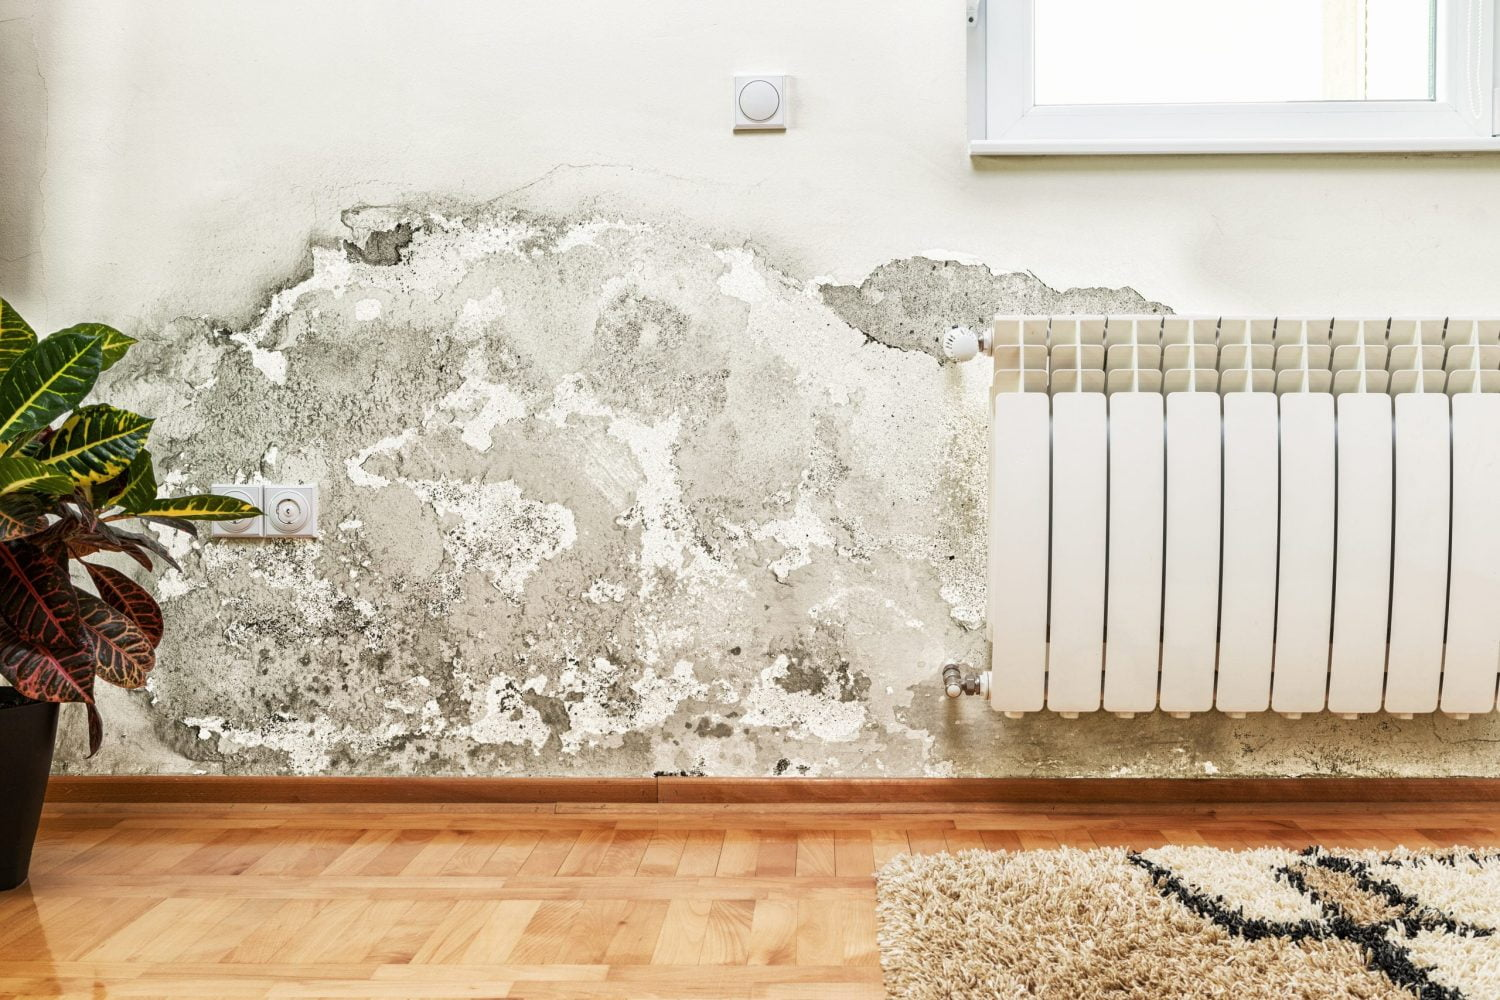 Mould and moisture buildup on wall